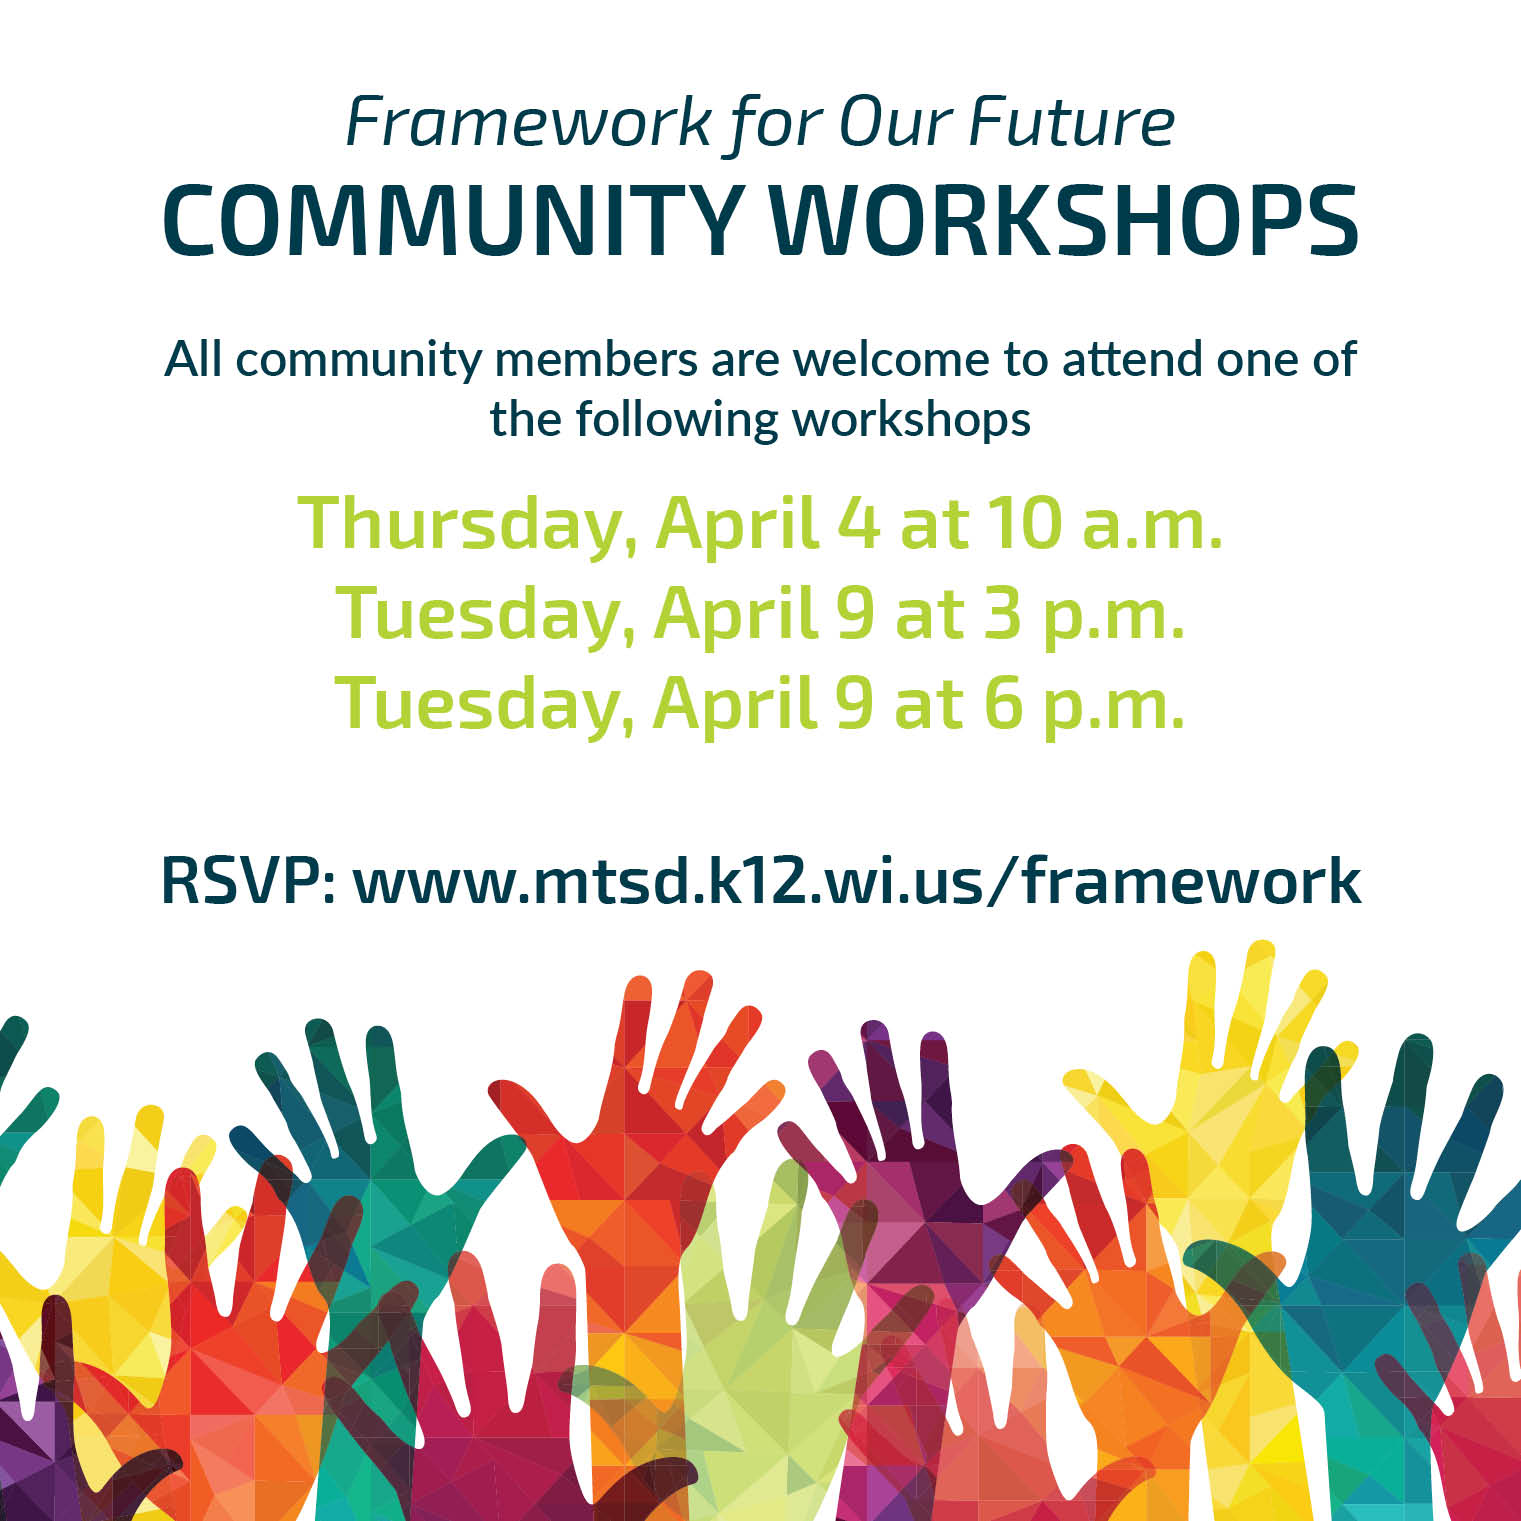 Community Members Invited and Encouraged to Attend Workshop